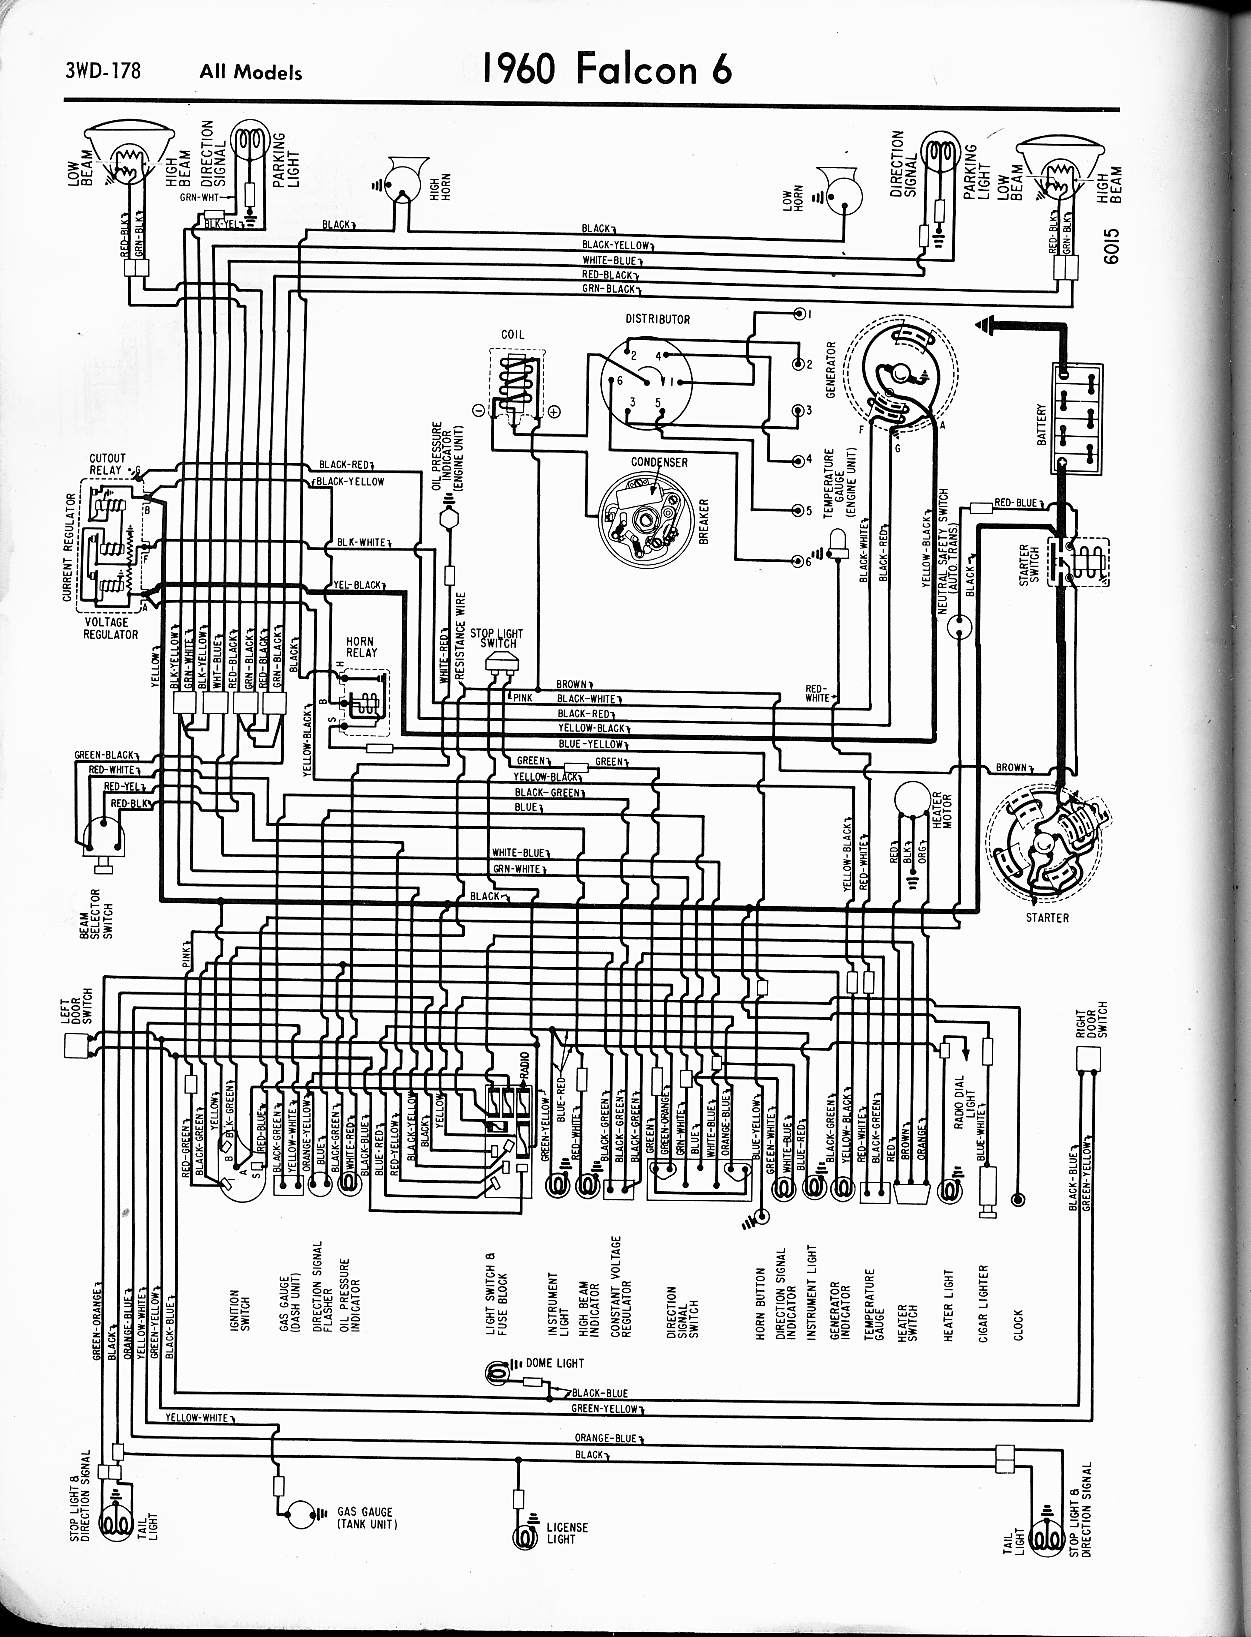 65 lincoln ignition wiring diagram with 1954 Ford F100 Wiring Diagram on 687009 Electrical Gremlins Front Running Lights Turn Signals Ammeter Question additionally 733146 64 5 Under Dash Harness Questions moreover 85 Ford 150 351 Alternator Wiring Diagram furthermore 1965 Mustang Wiring Diagrams in addition 63 T Bird Restoration Wiring Diagrams.